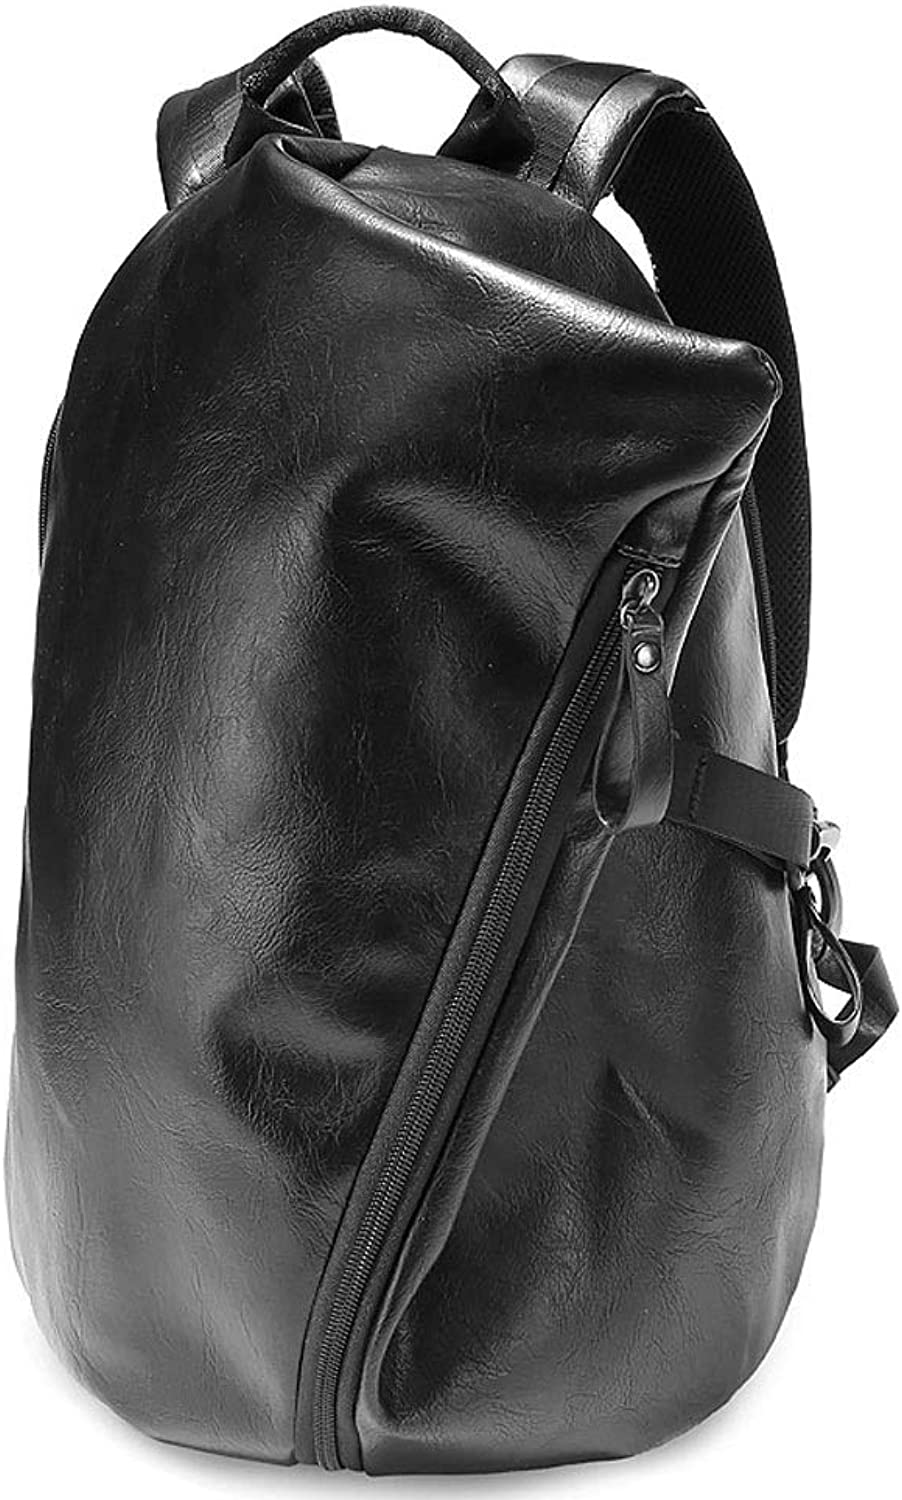 PU Backpack Fashion New Korean Casual Men and Women Fashion Bag Trend Student Bag Slim Version can accommodate 14inch Laptop